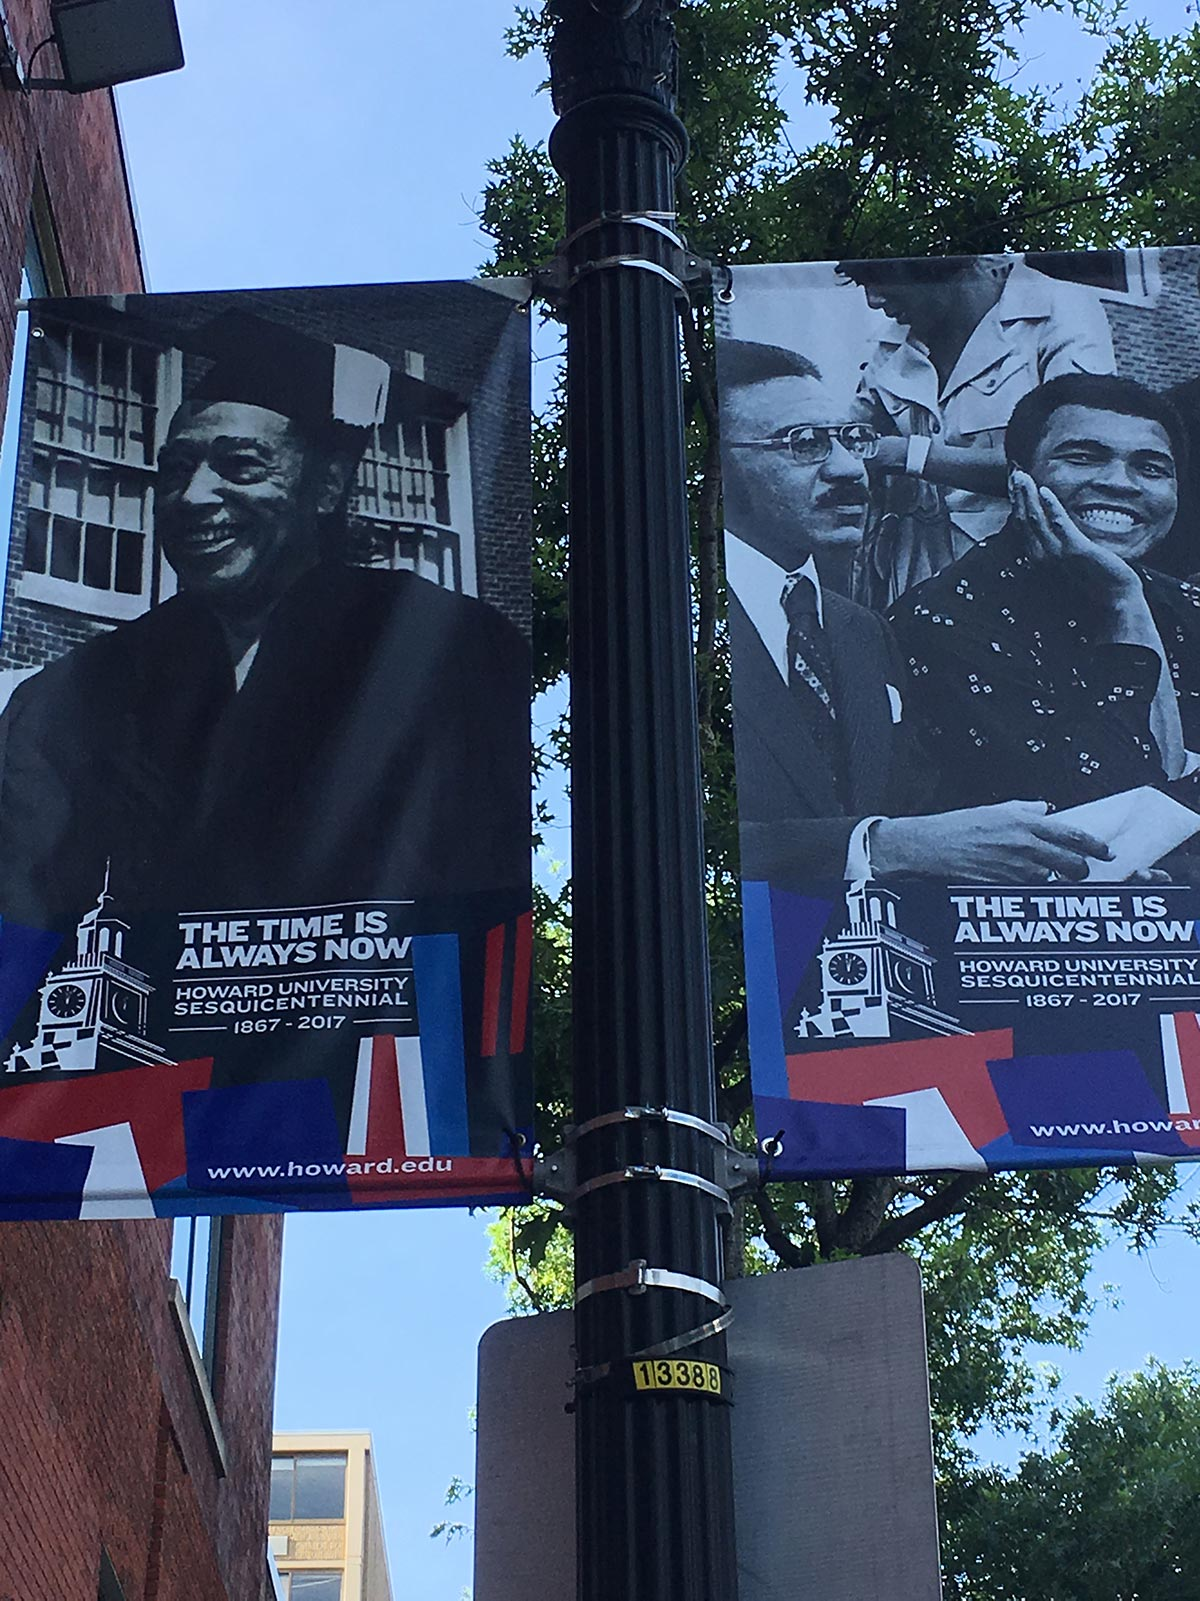 Howard University Sesquicentennial Posters